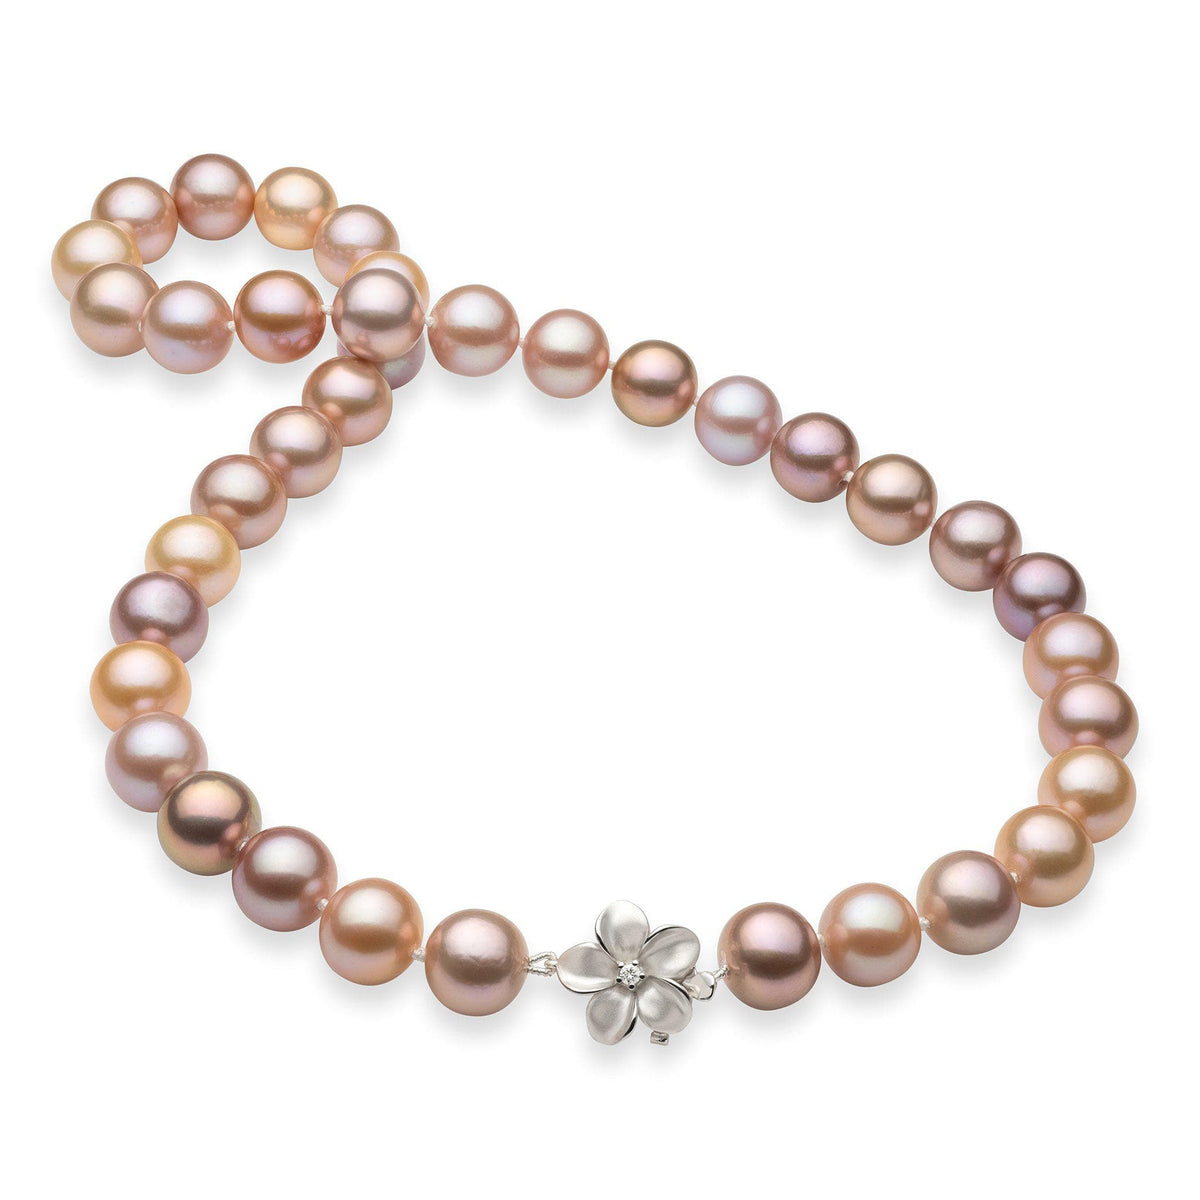 Freshwater Pearl Strand in 14K White Gold Other With Diamonds 006-14857